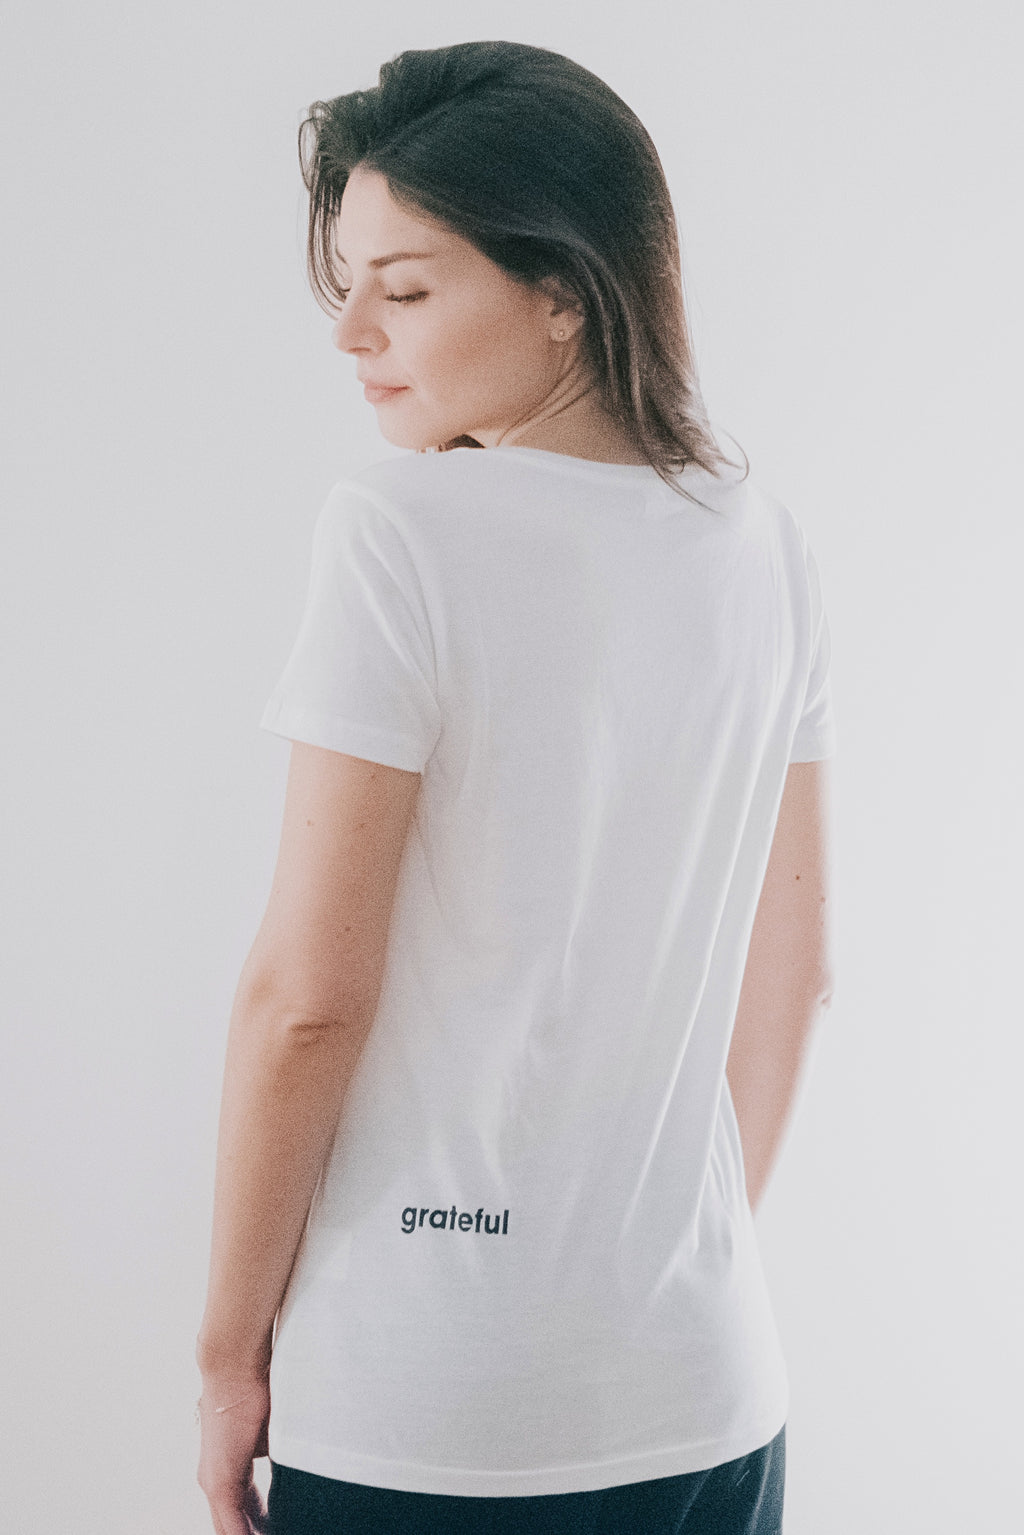 grateful shirt woman